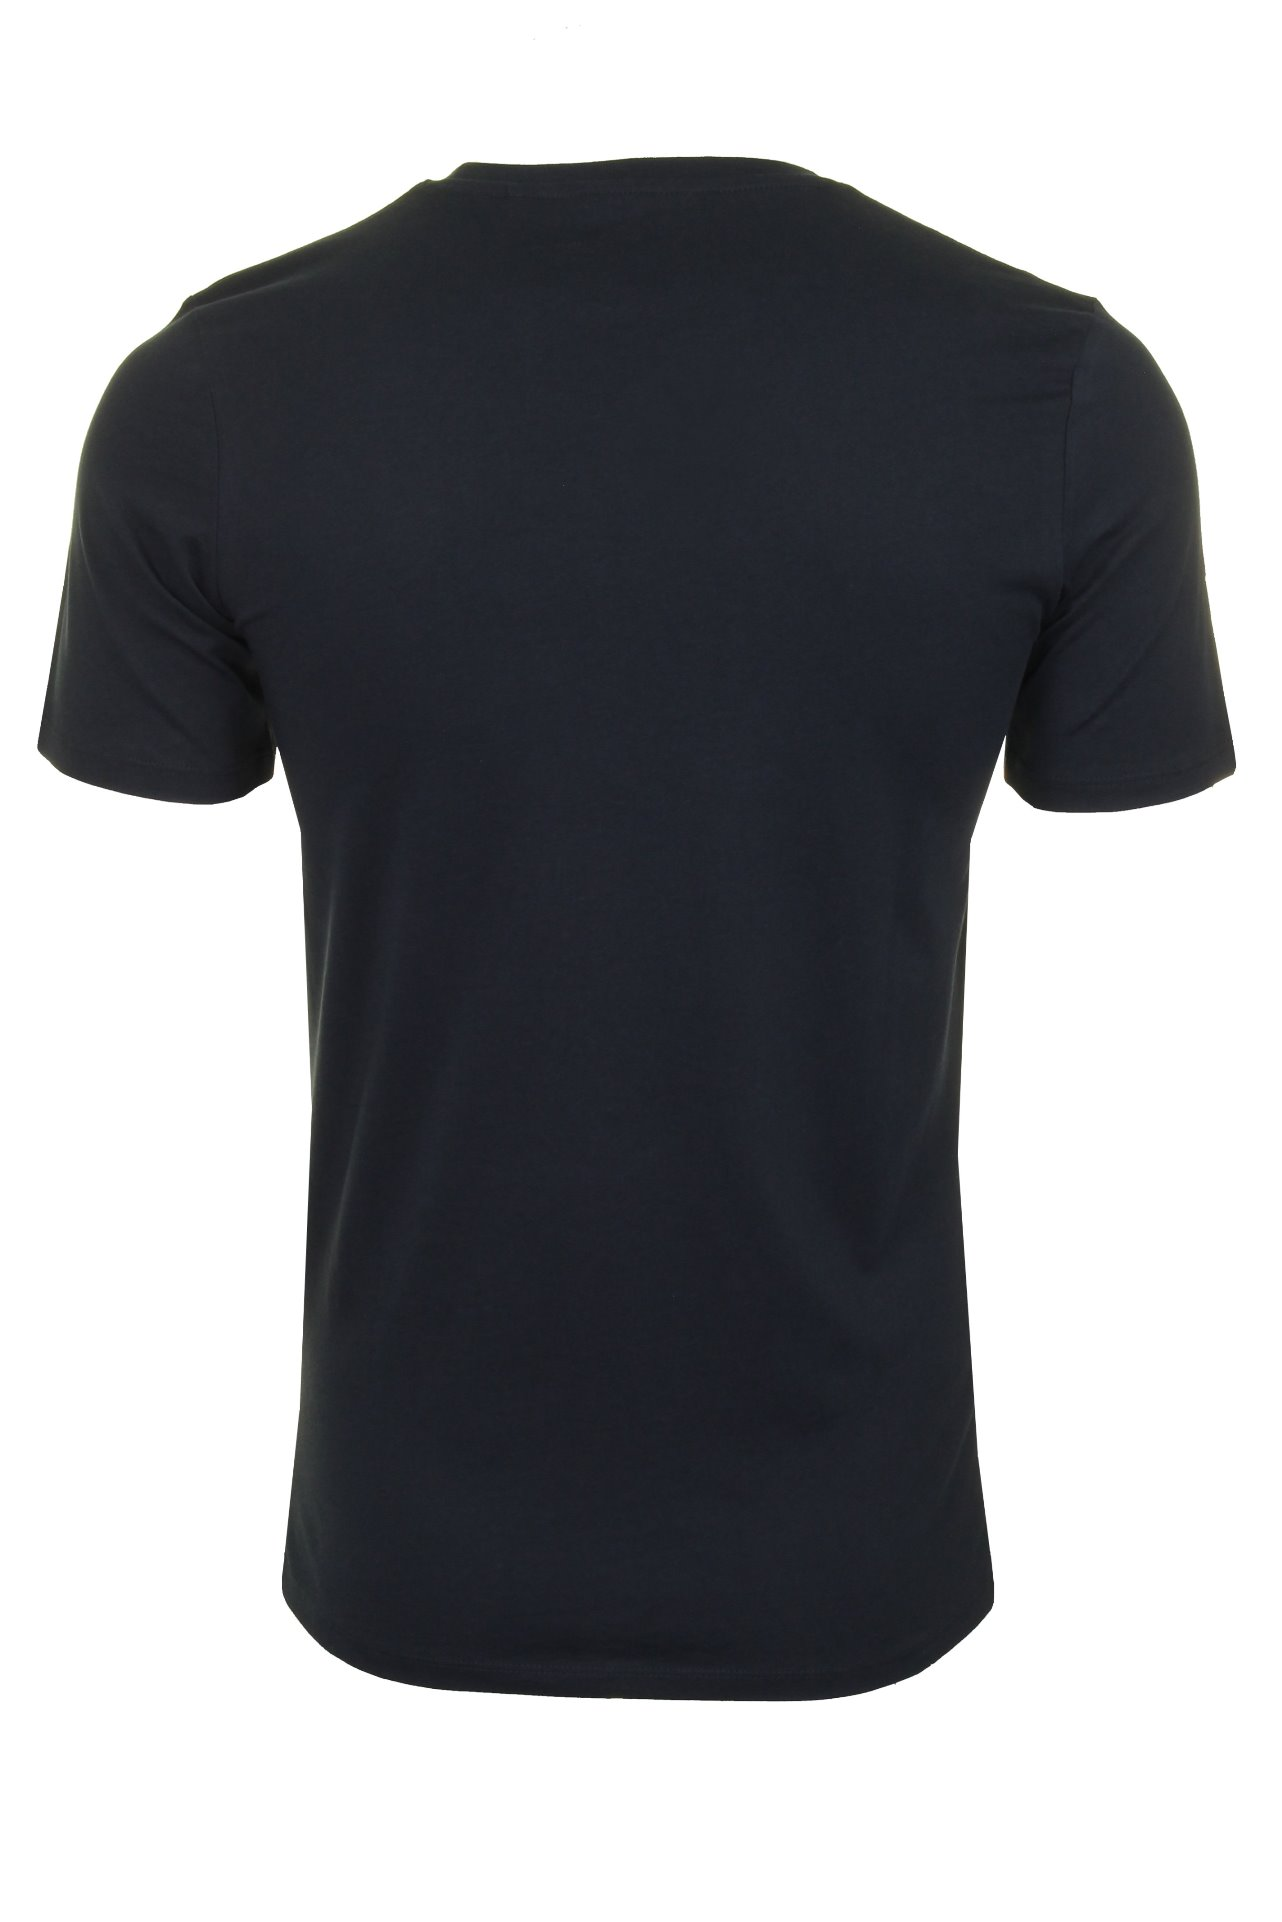 Jack-amp-Jones-Mens-039-JJE-Logo-Tee-039-T-Shirt thumbnail 10